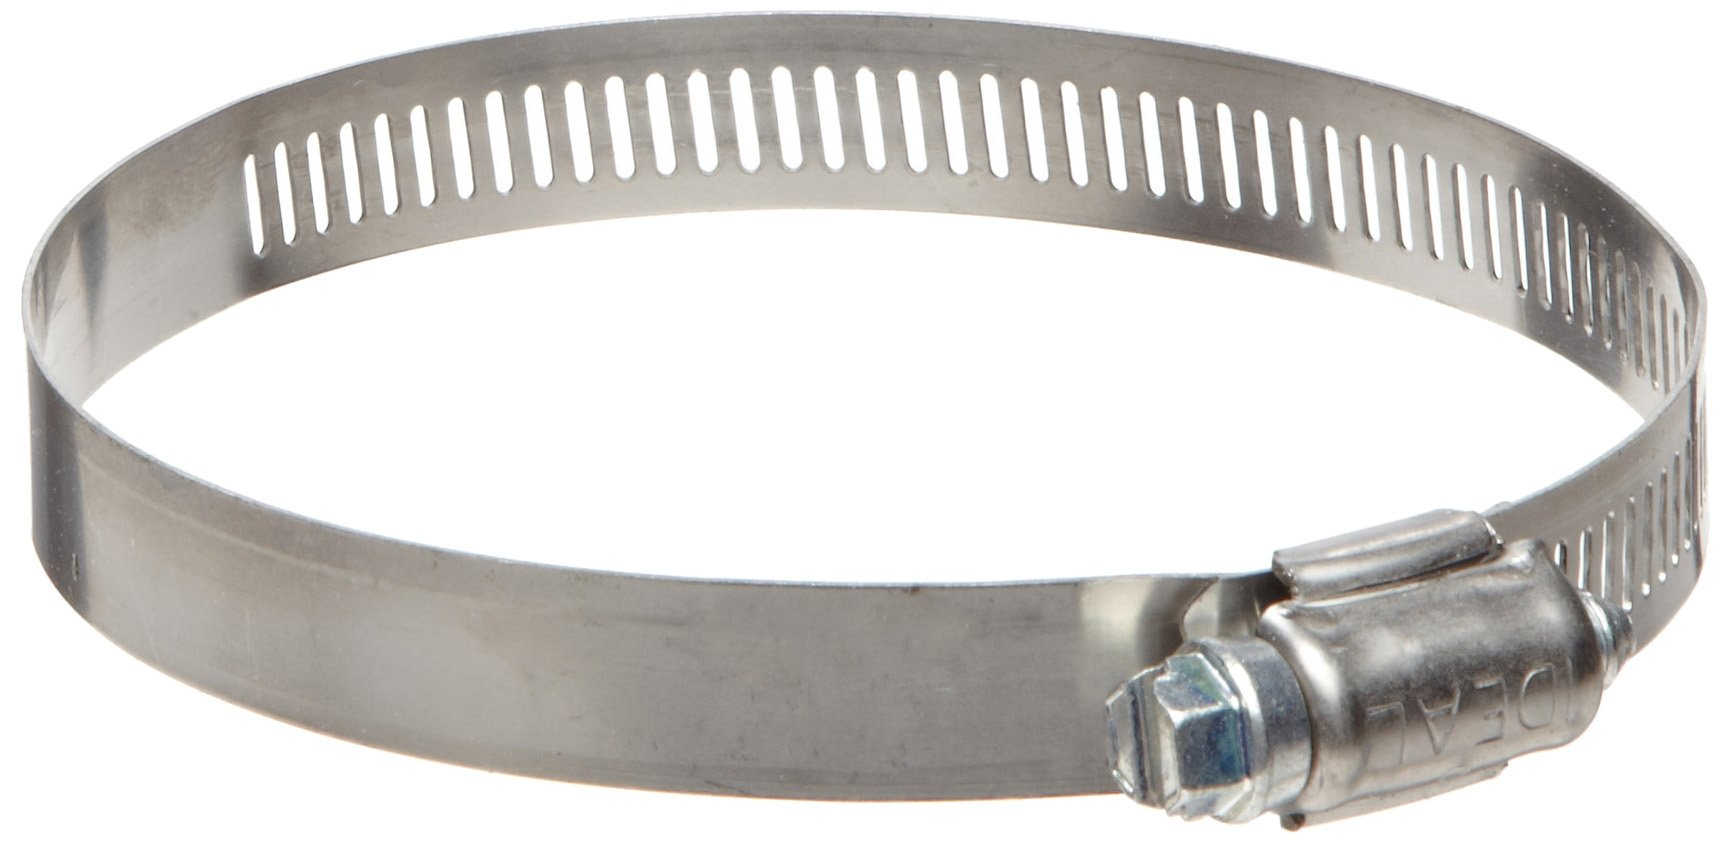 Ideal 57 SeriesStainless Steel 201/301 Worm Gear Hose Clamp, 2-3/4'' Clamp ID, 3-3/4''Clamp OD, 1/2'' Band Width, Pack Of 10